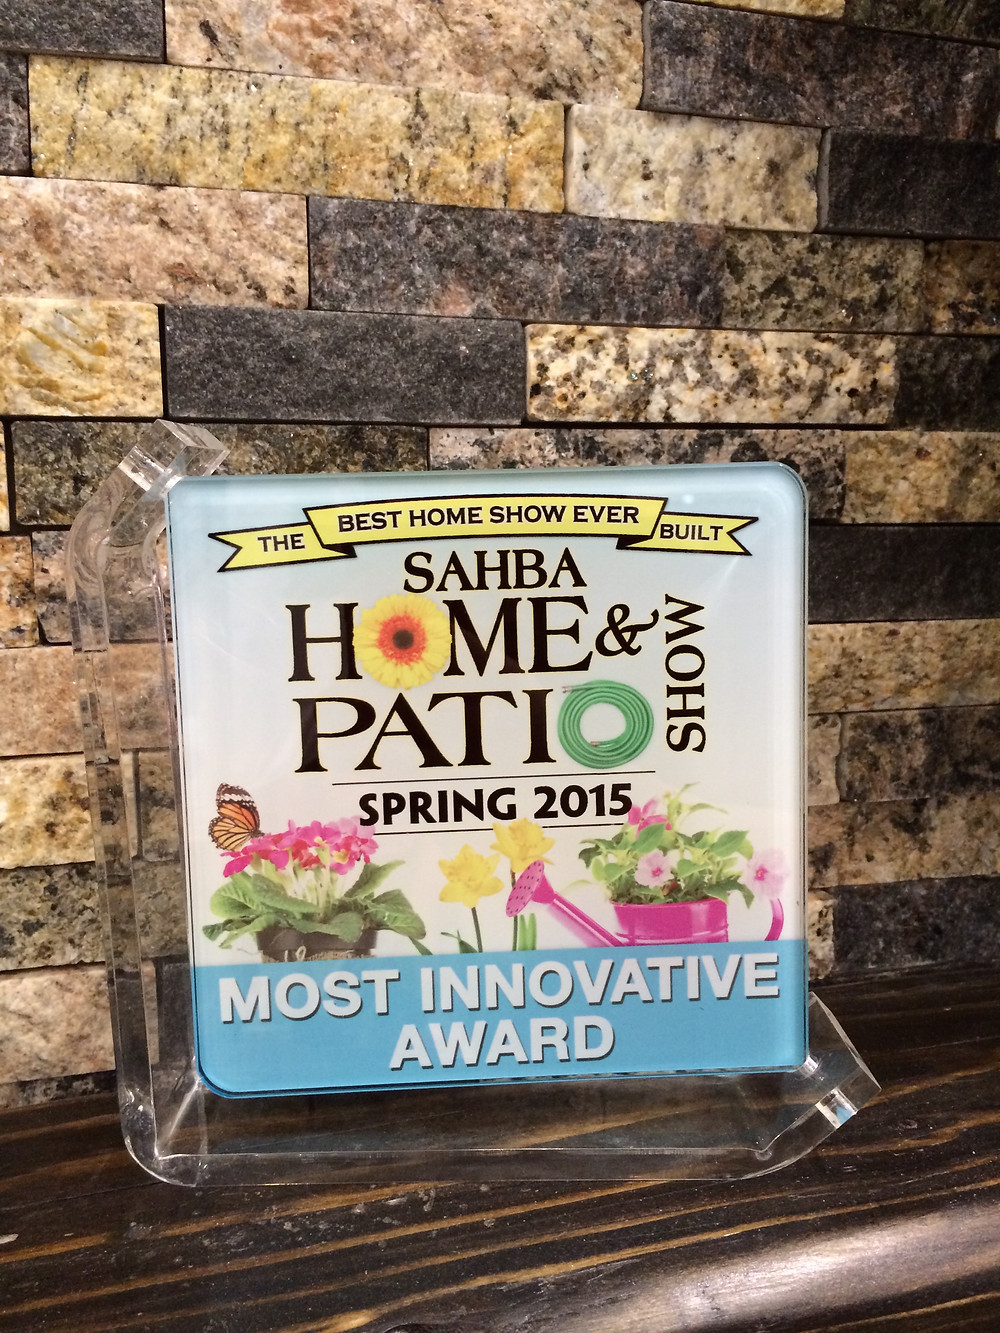 A&E Recycled Granite won the Most Innovative Award Spring 2015